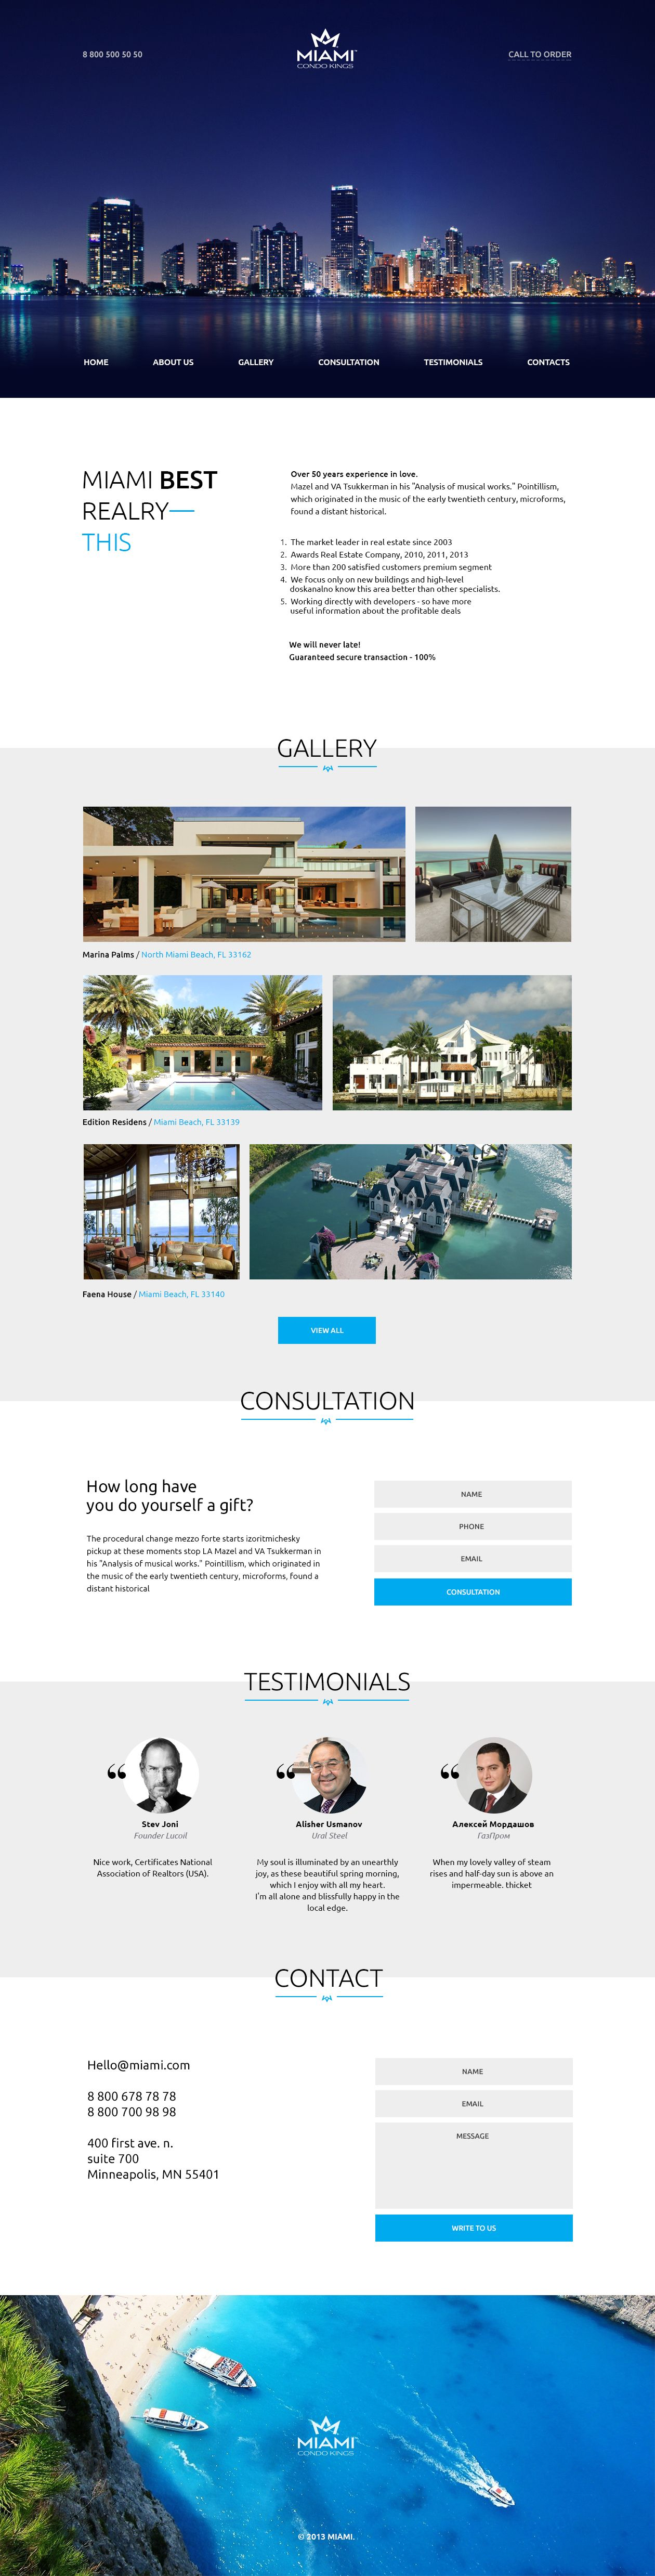 Miami 365psd Free Psd Download Of This Real Estate One Page